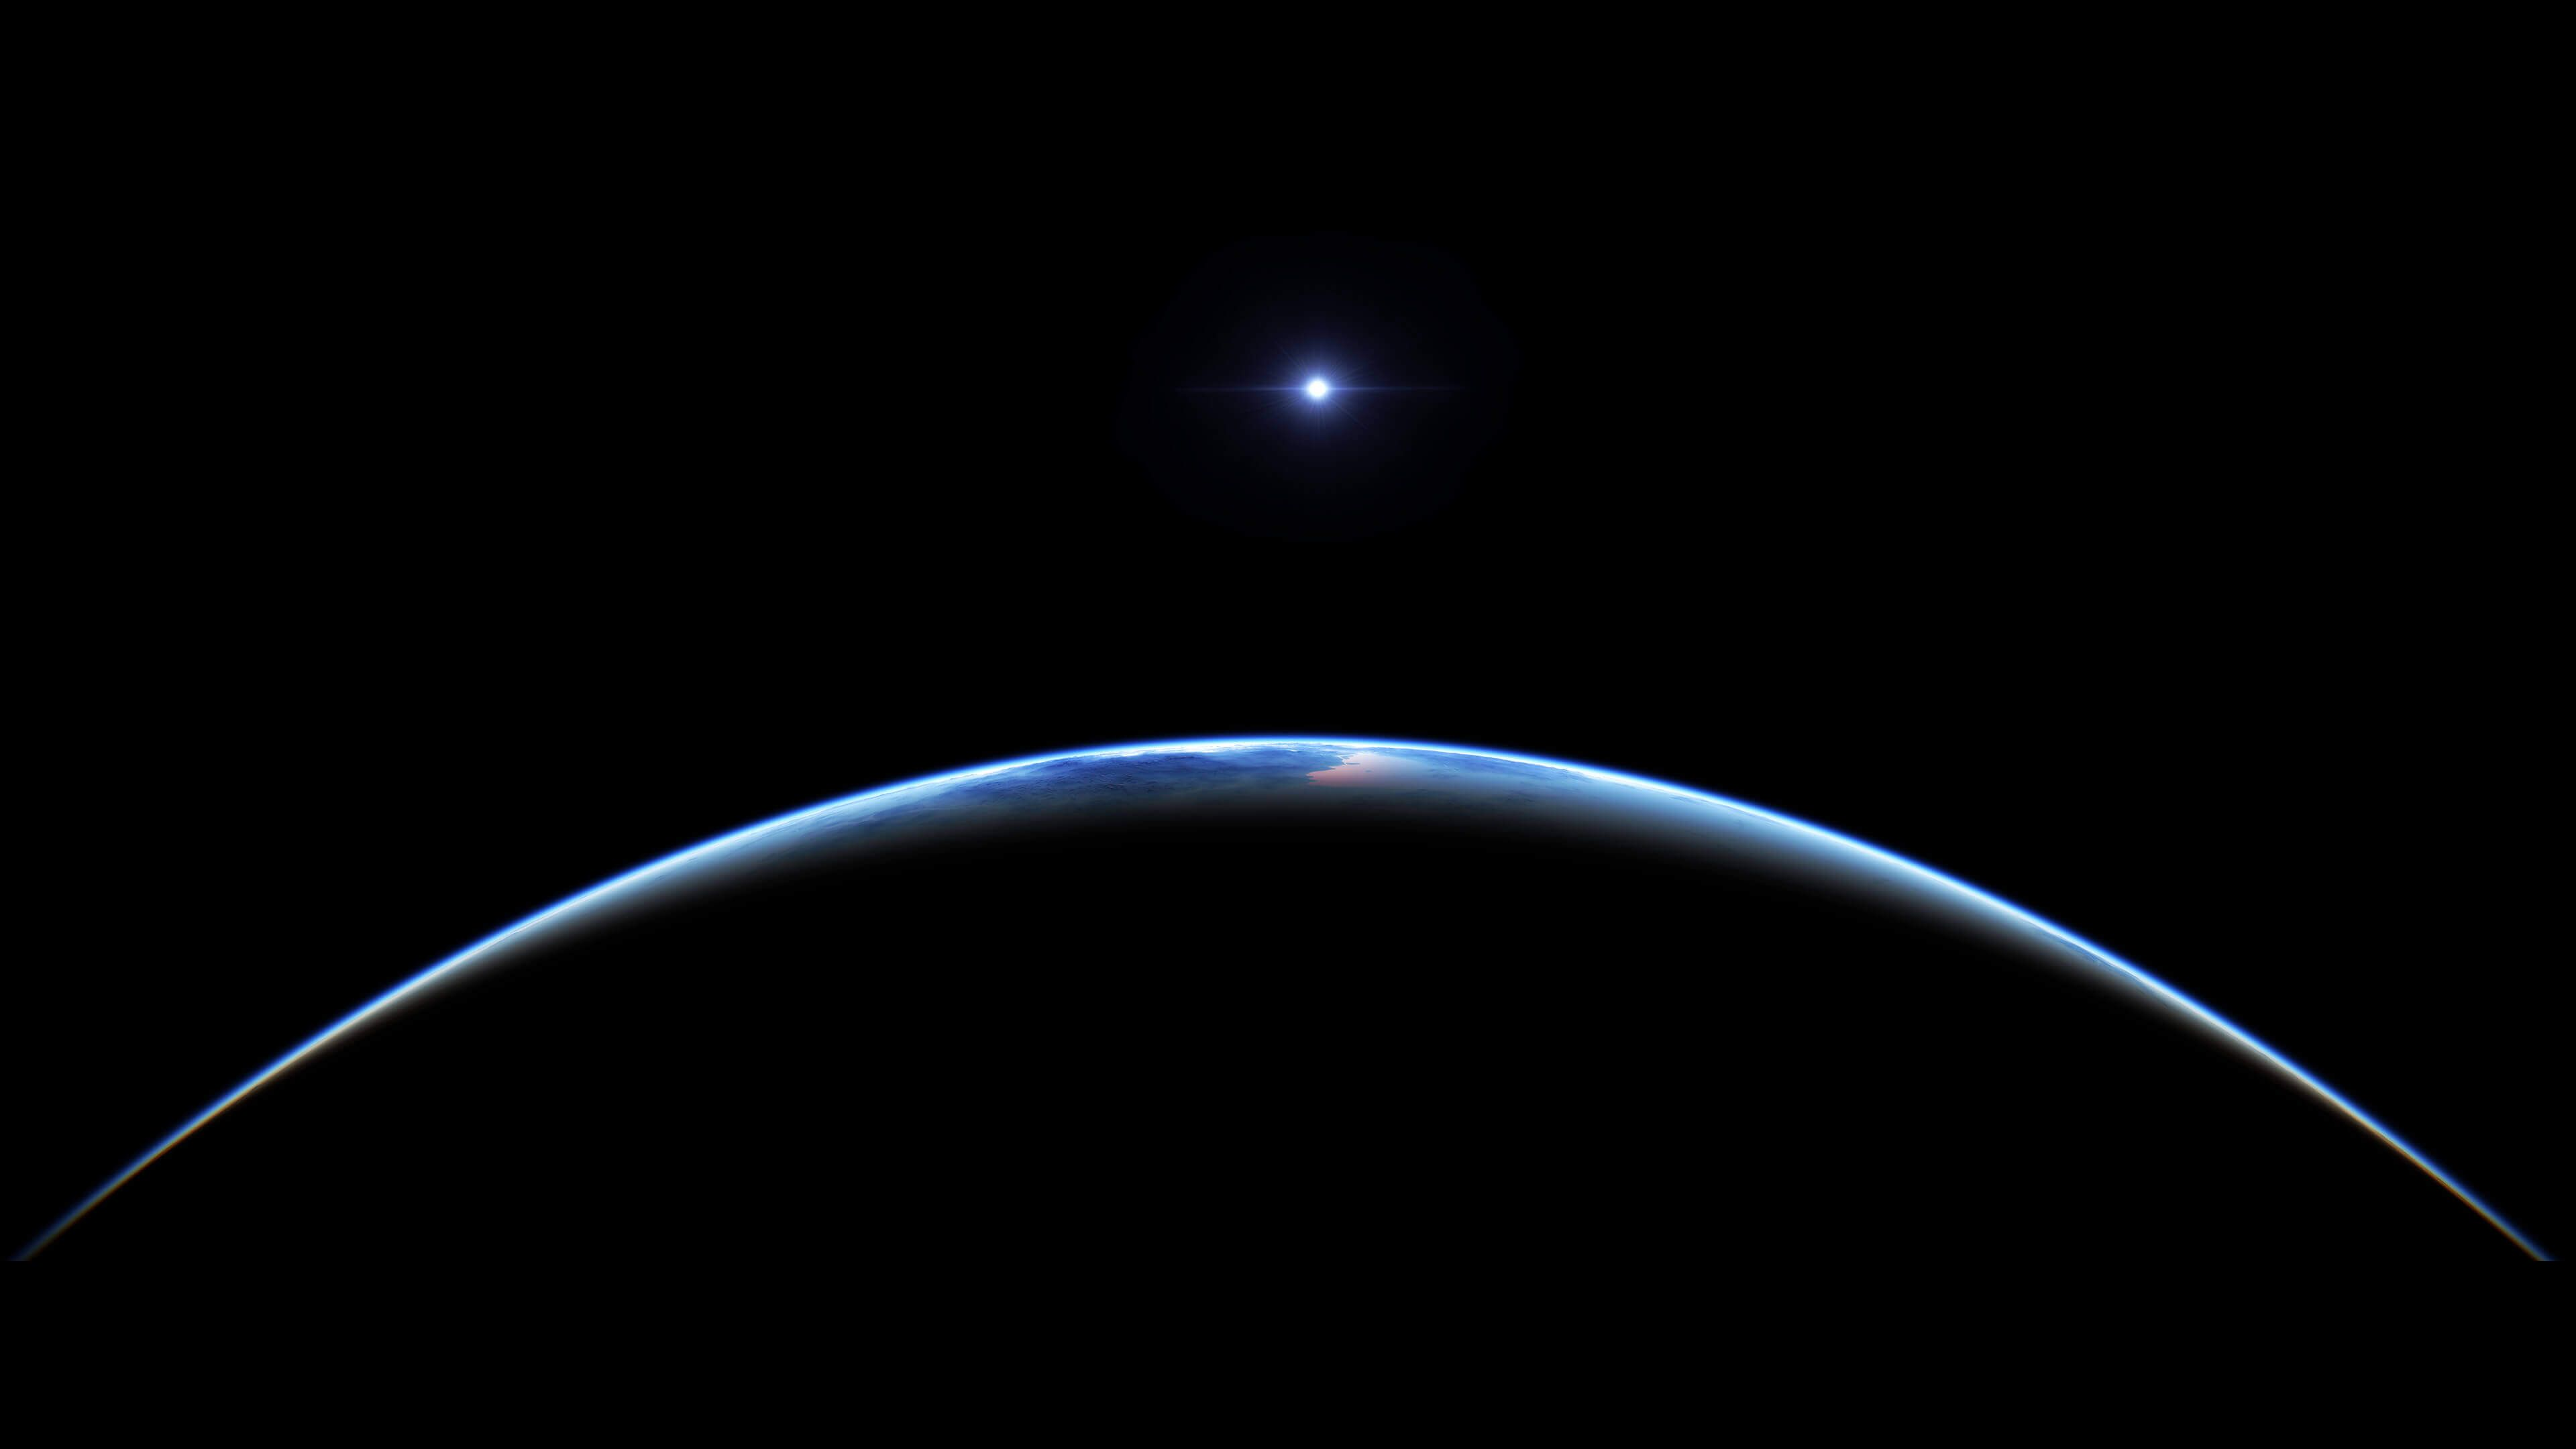 Earth-at-Night-view-from-space-4K-wallpaper.jpg (3840×2160